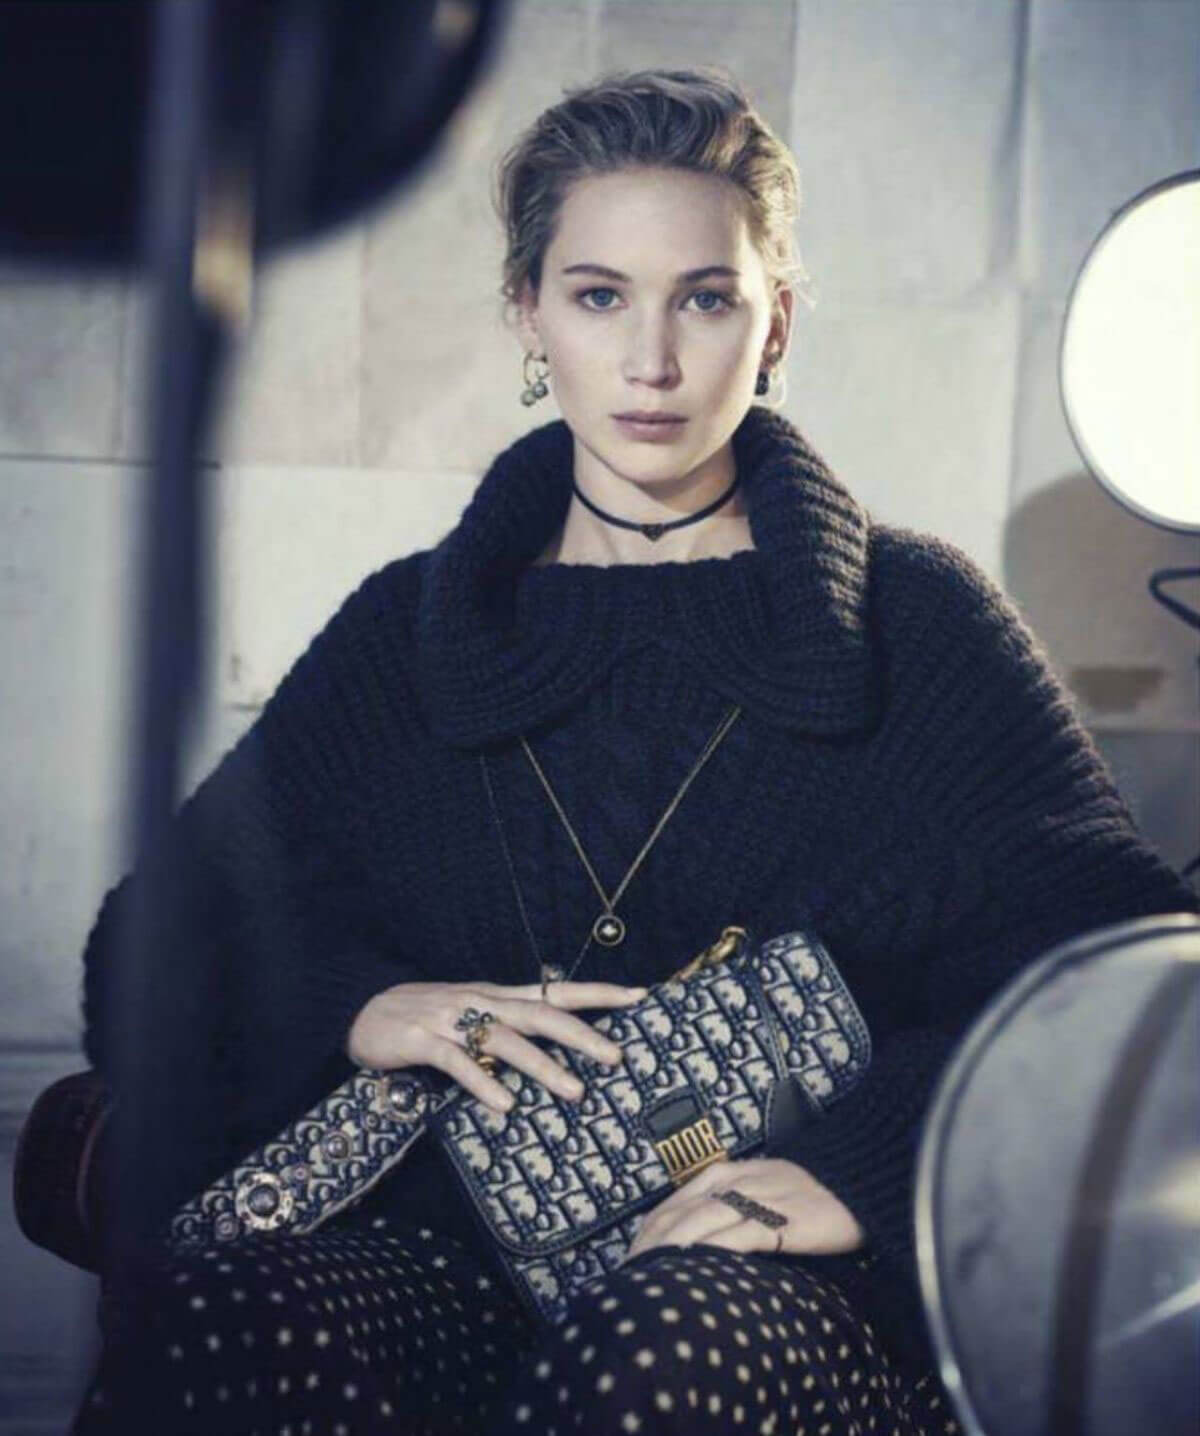 Jennifer Lawrence for Dior Pre-Fall 2018 Ad Campaign Photos 2018/05/28 1